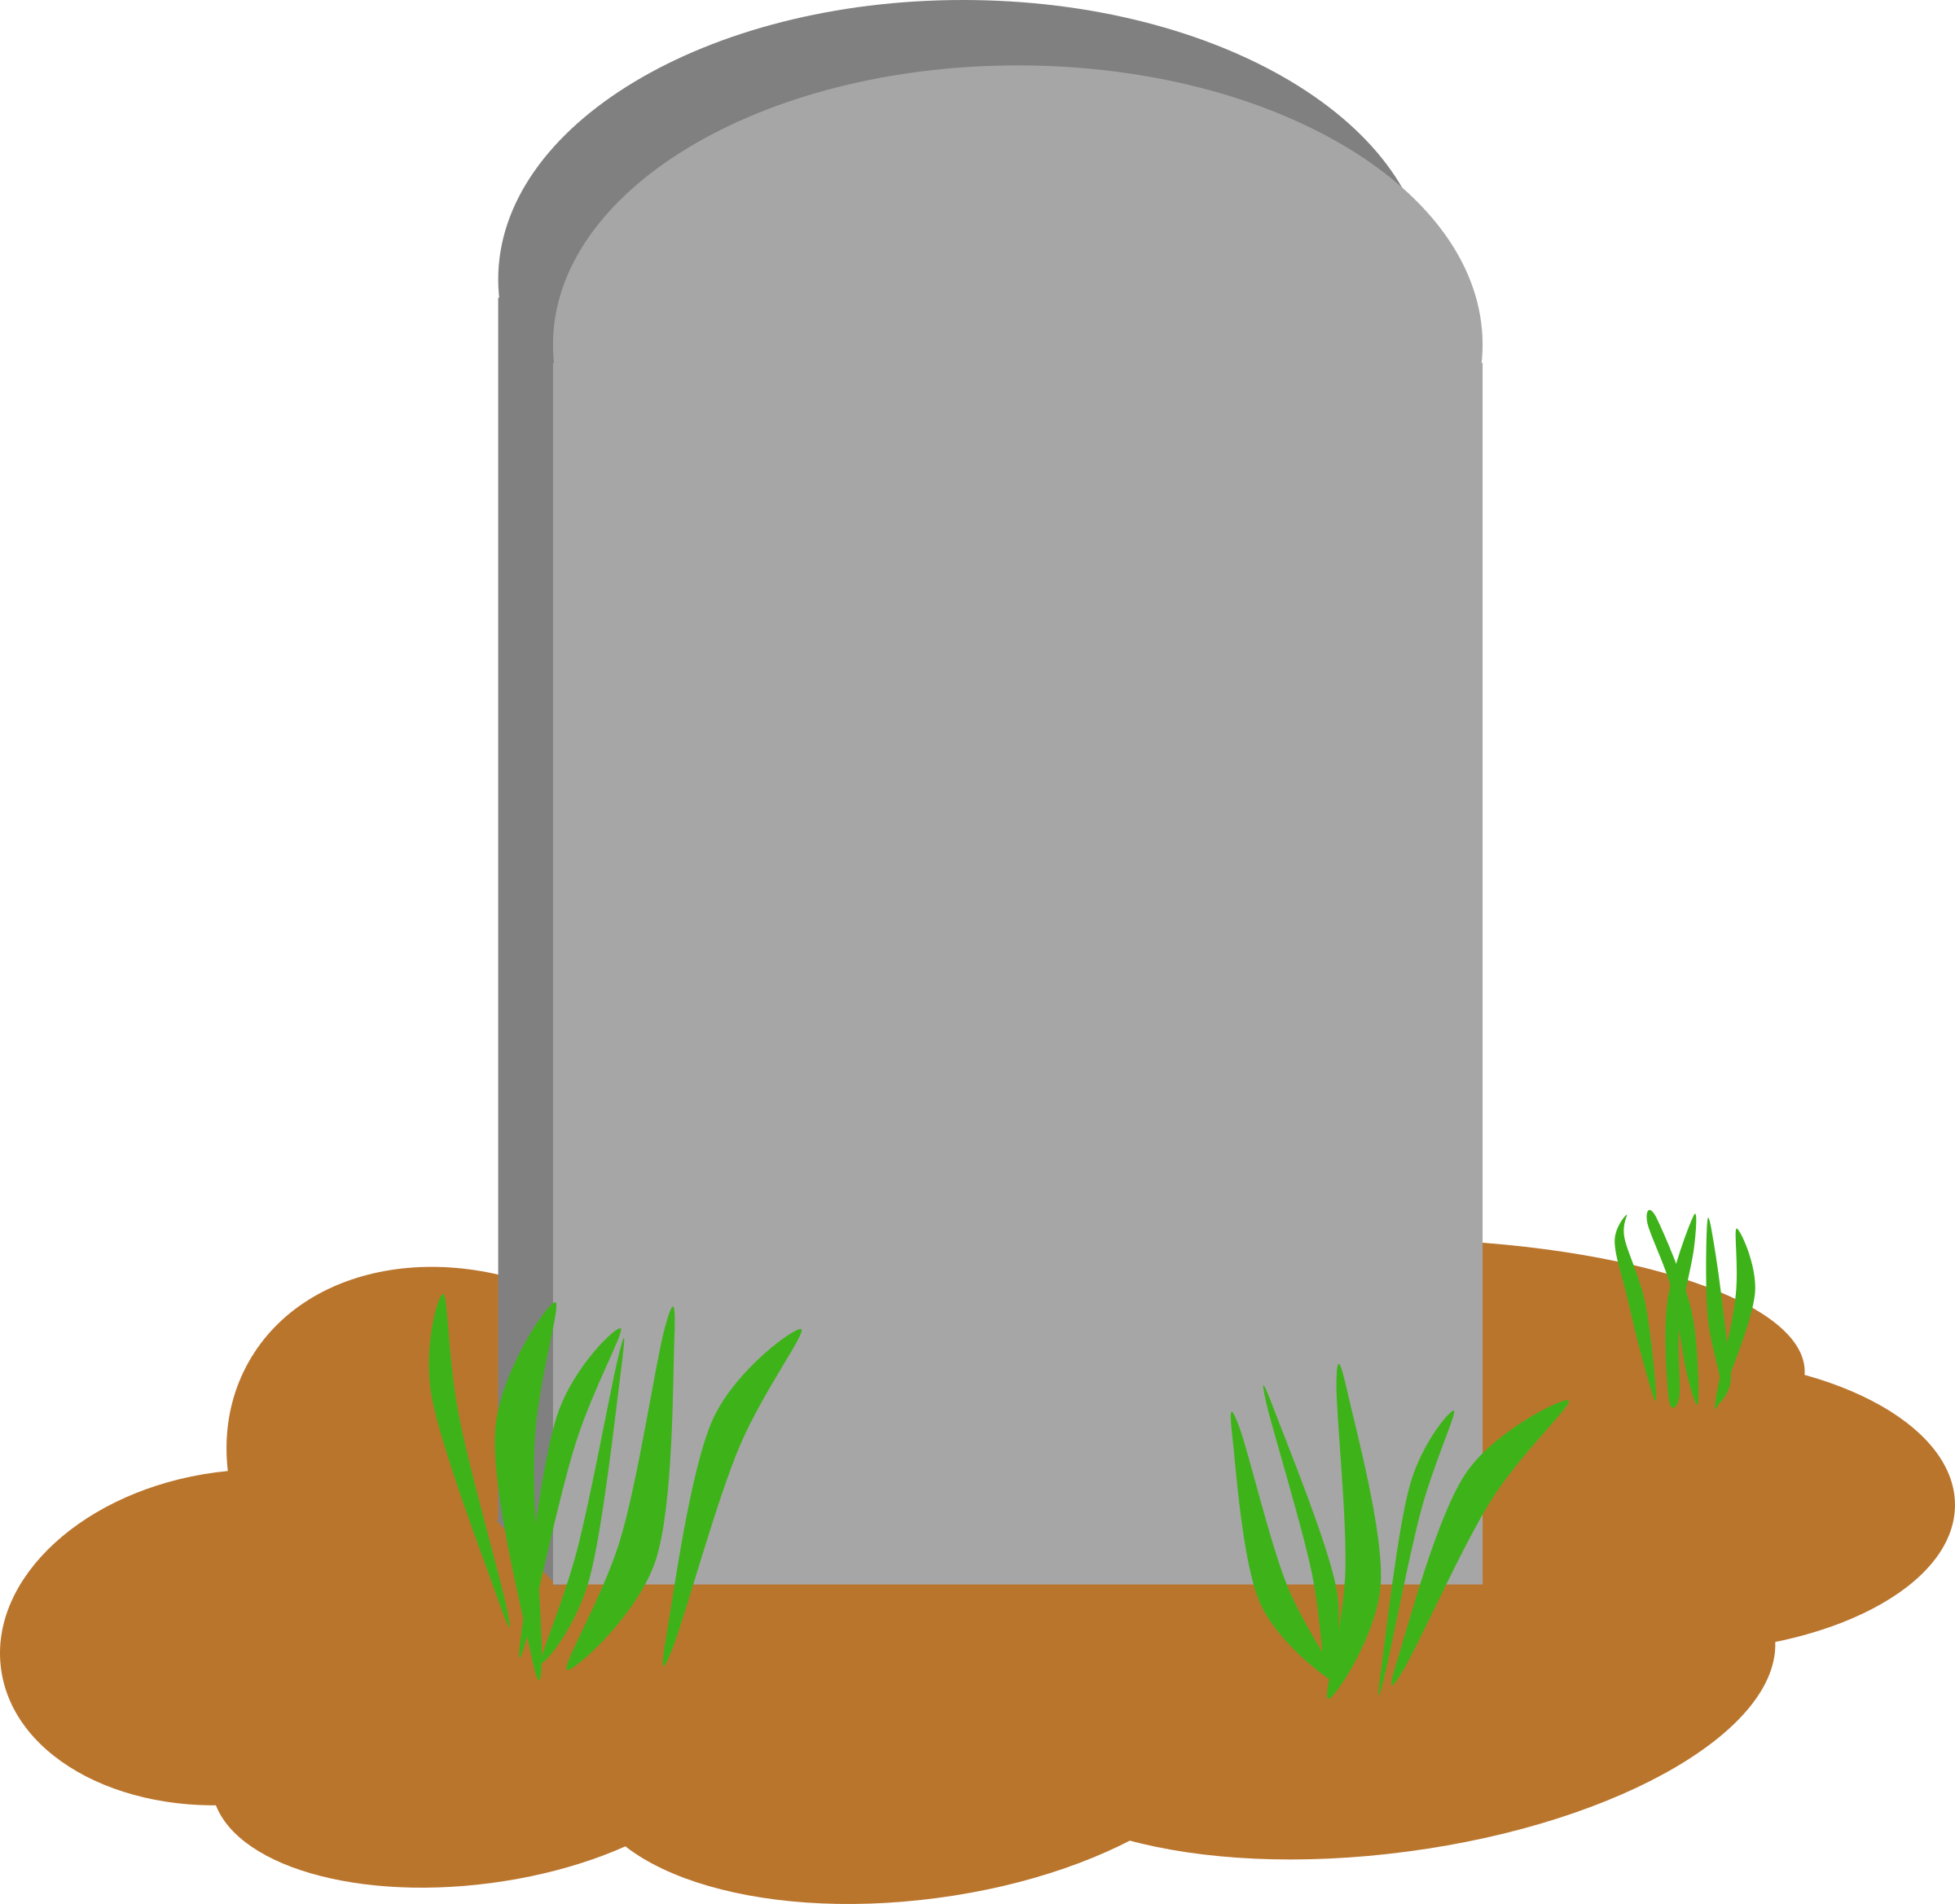 Halloween tombstones sayings clipart clip freeuse download Famous Tombstone Template Printable Motif - Examples Professional ... clip freeuse download